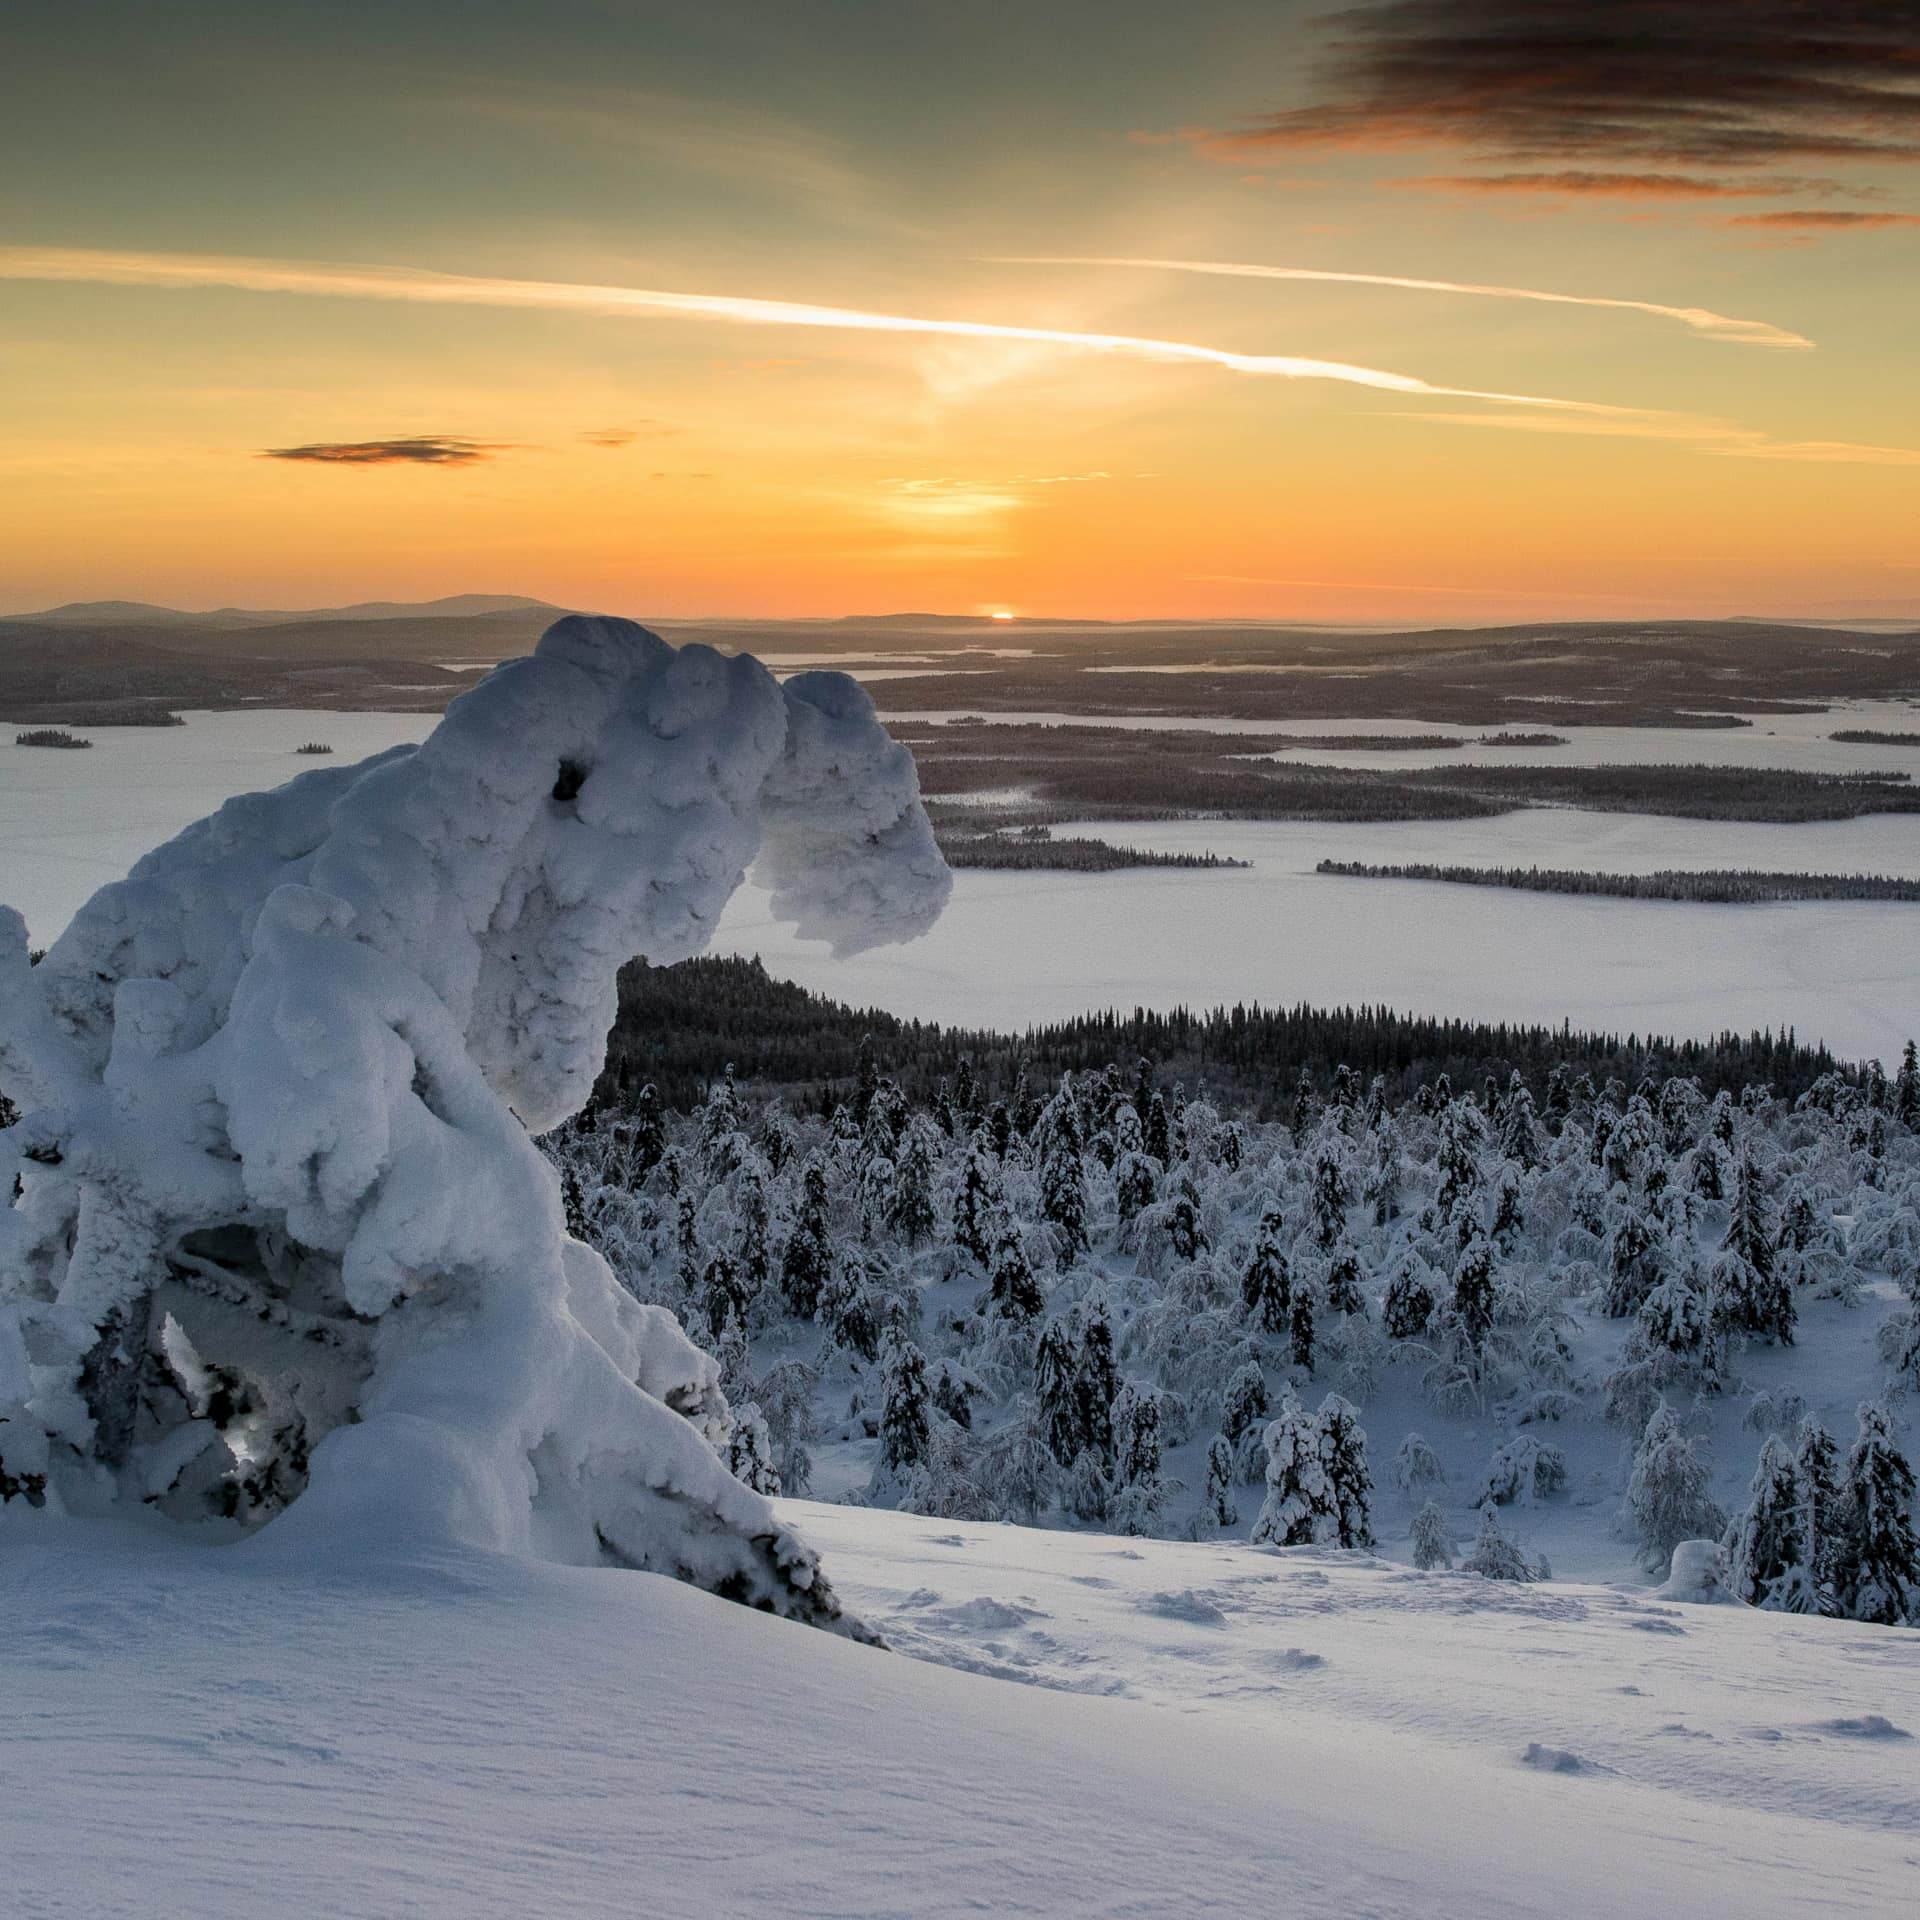 landscape from the fell with snowy forest and orange sky in lapland